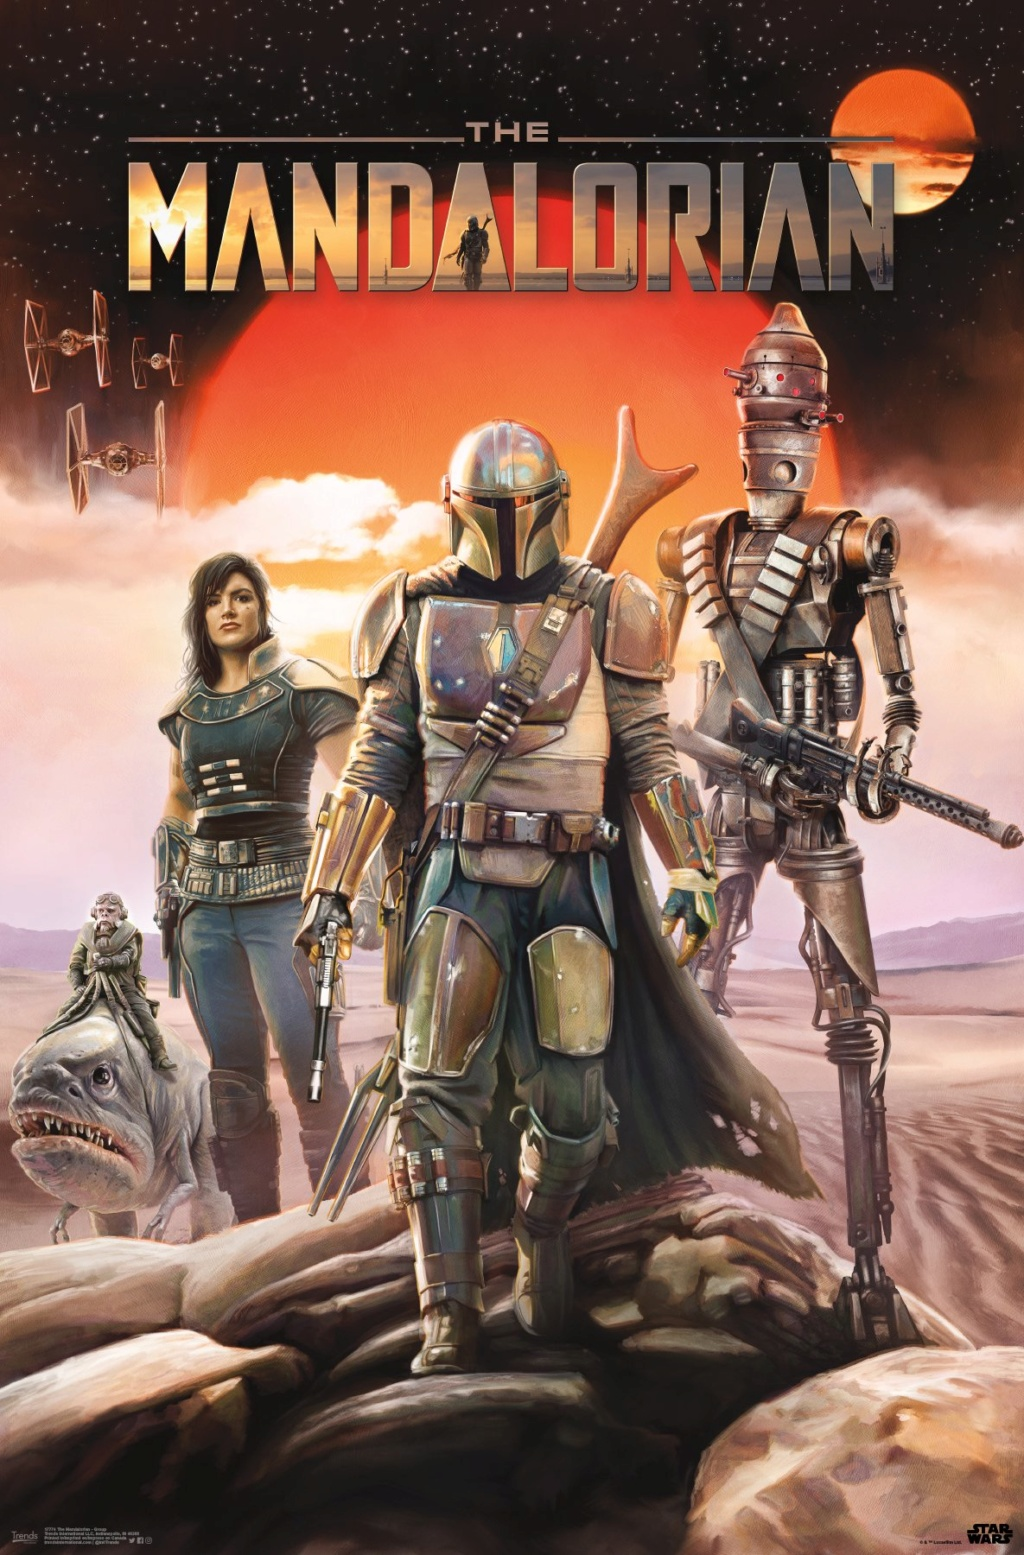 Les NEWS de la série Star Wars The Mandalorian - Page 3 Poster25